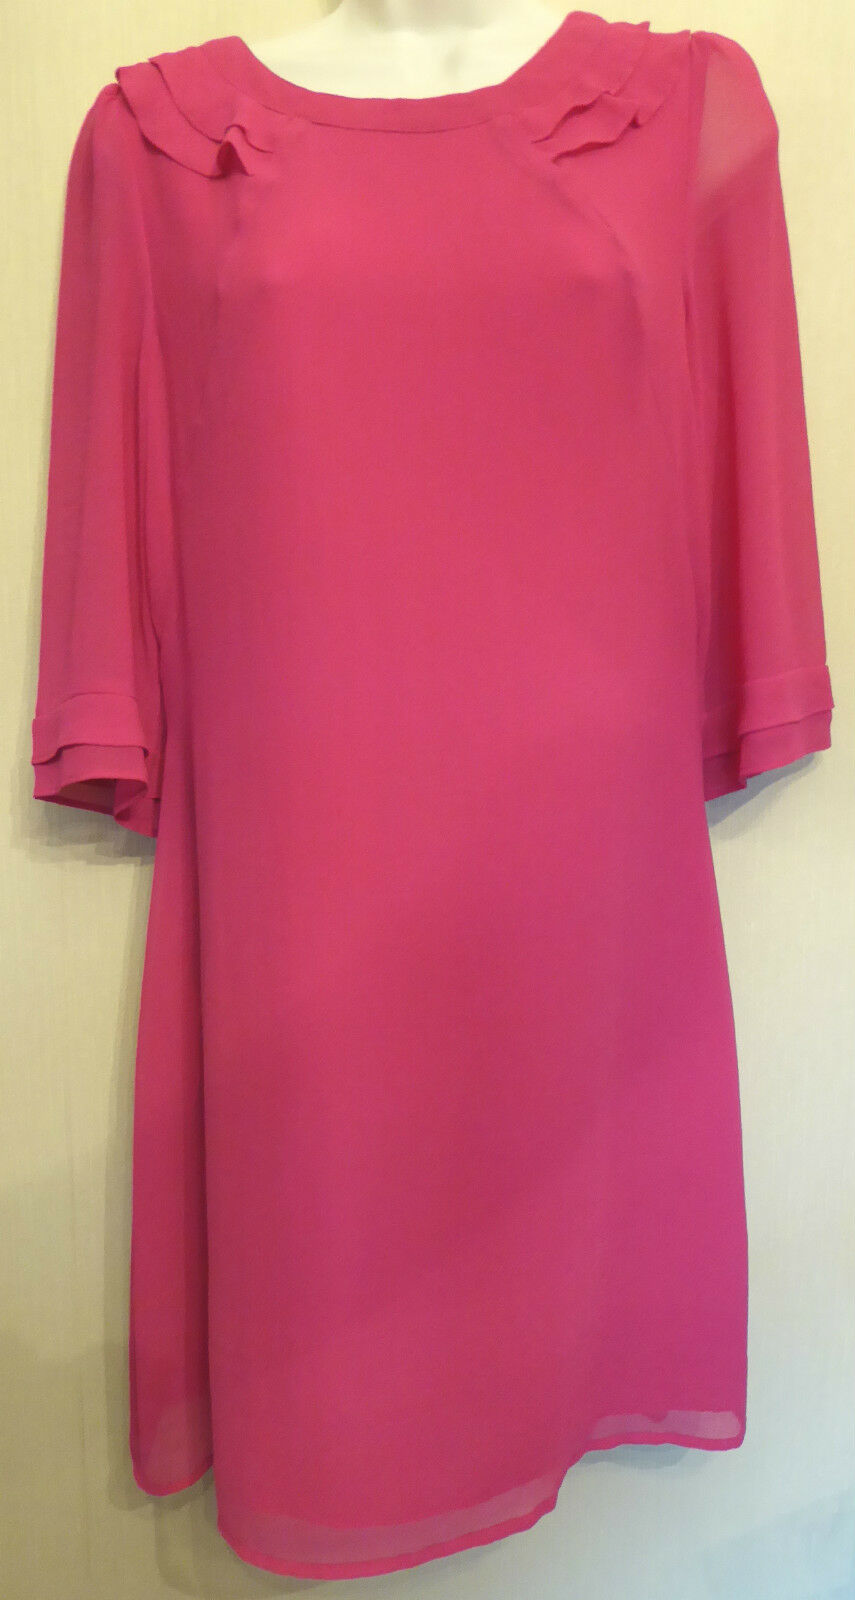 Oasis UK12 EU40 US8 new pink crepe shift dress with 3 4 length sheer sleeves